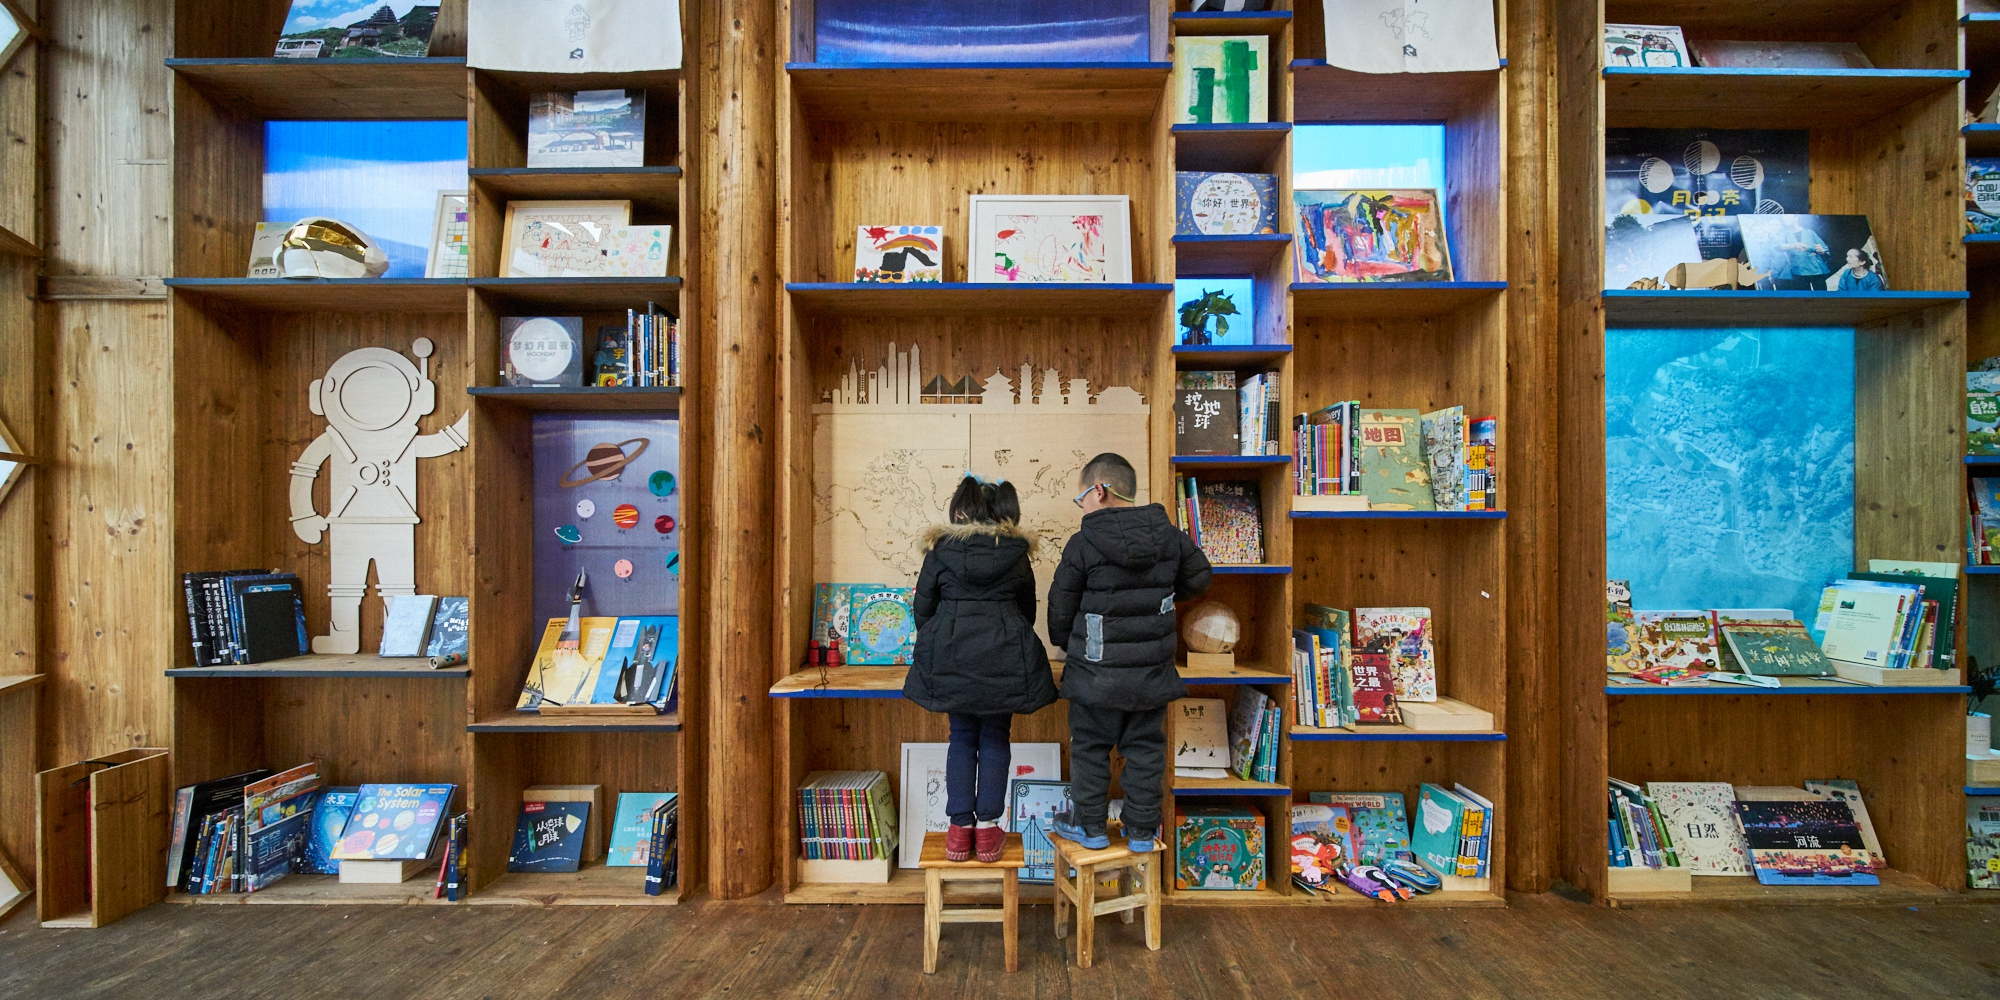 Unlike an ordinary and static library, the Book House provides a place for children to learn, have fun, and to interact with peers. Photos: XU Liang Leon (PhD candidate, School of Architecture, CUHK)